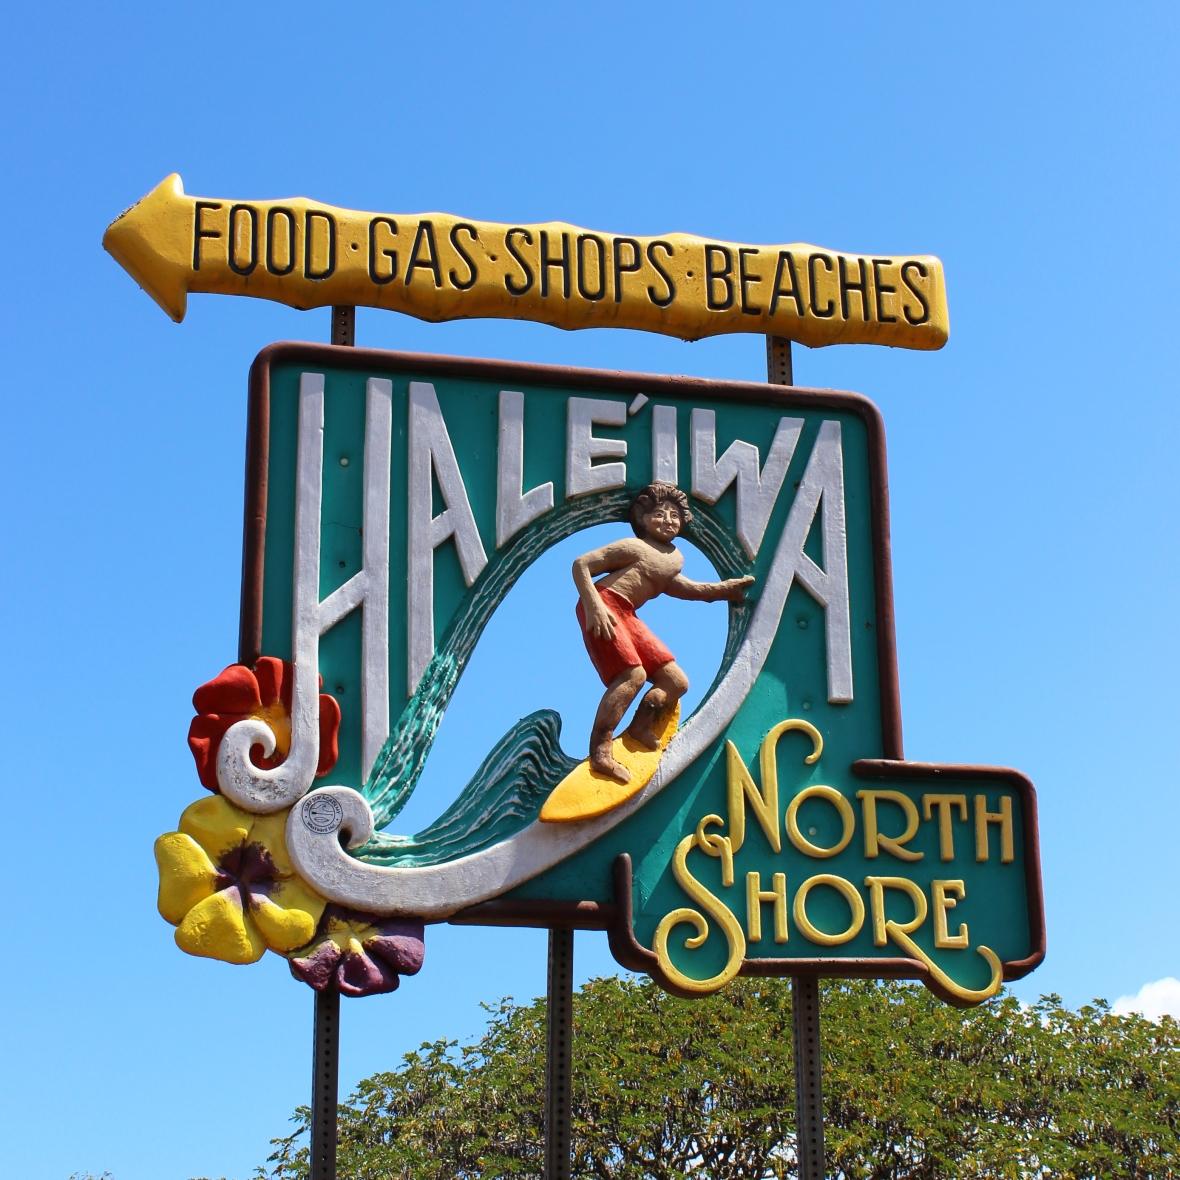 Hale'iwa North Shore Sign